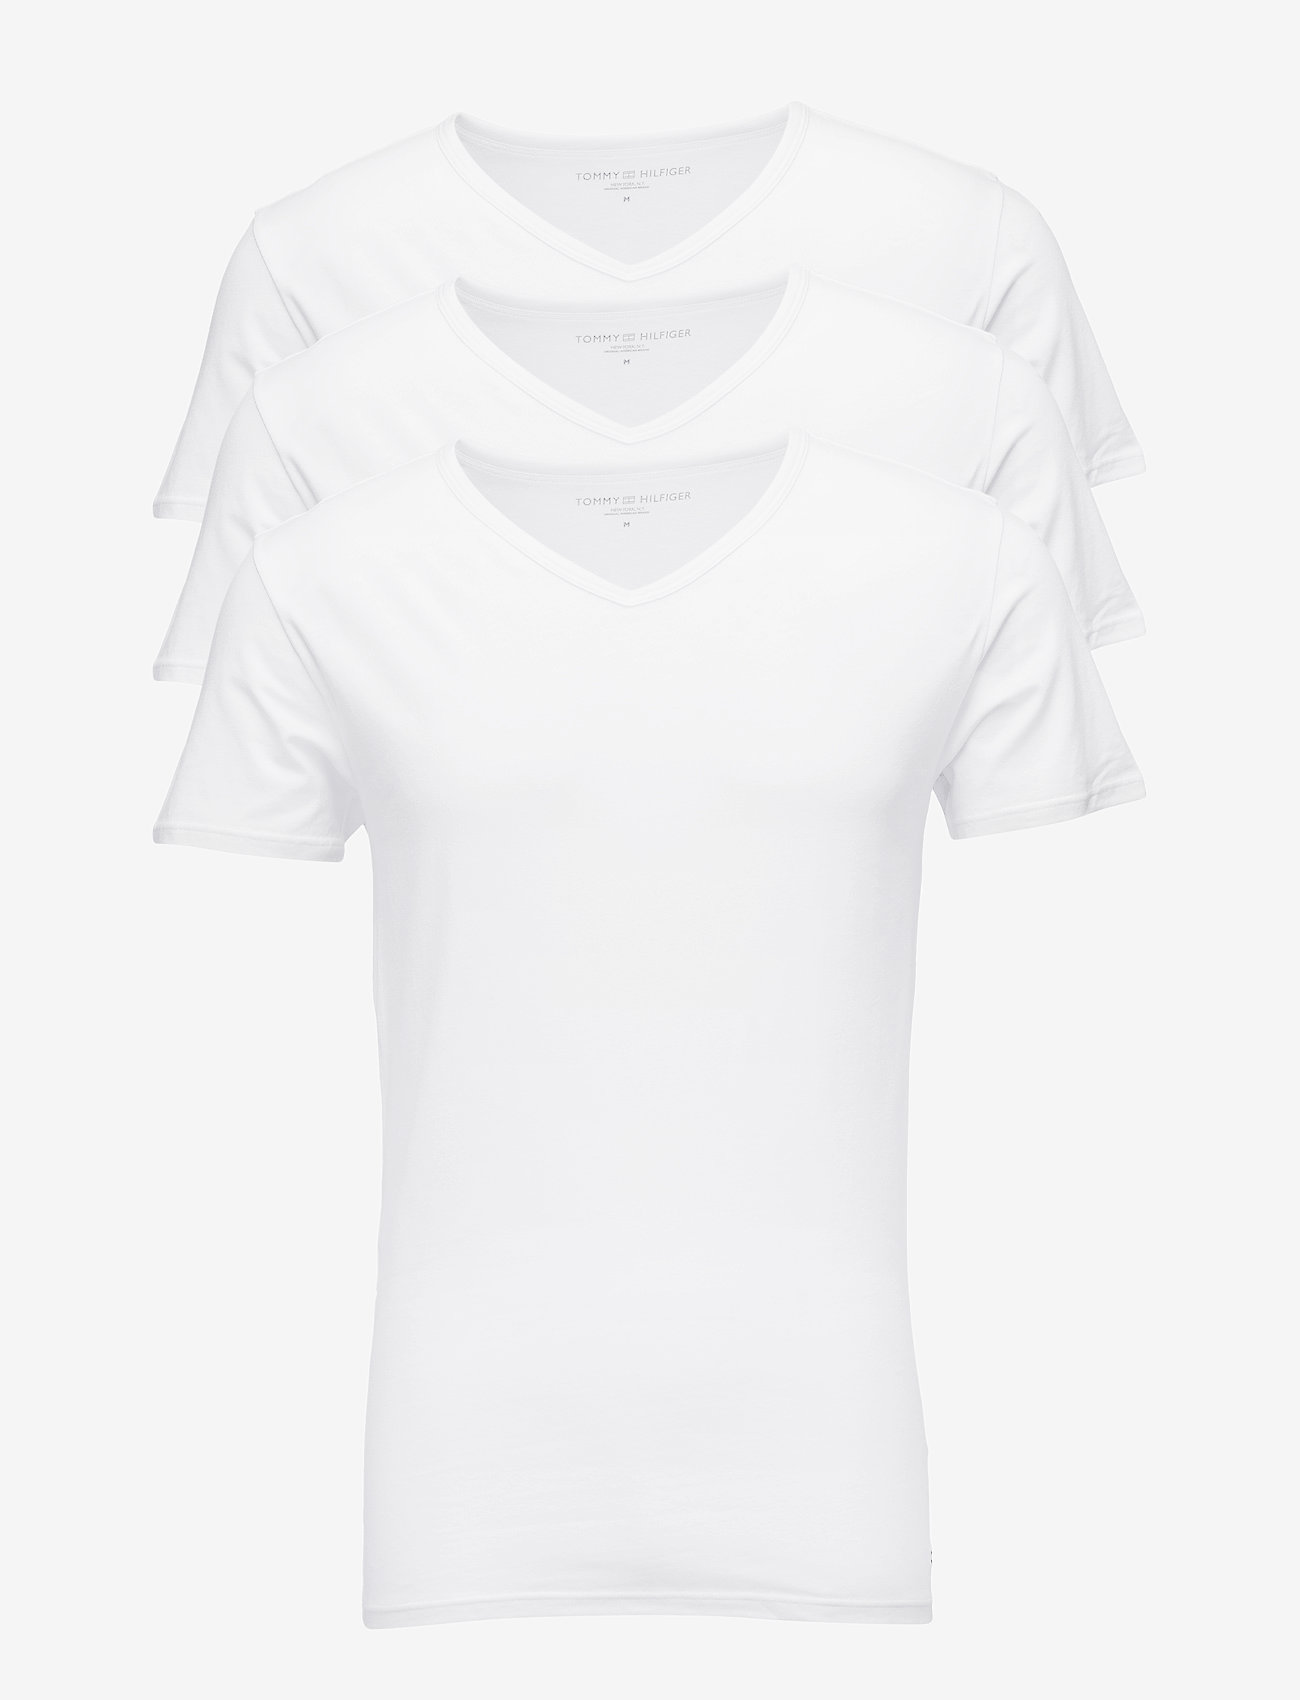 Tommy Hilfiger - STRETCH VN TEE SS 3PACK - multipack - white - 0